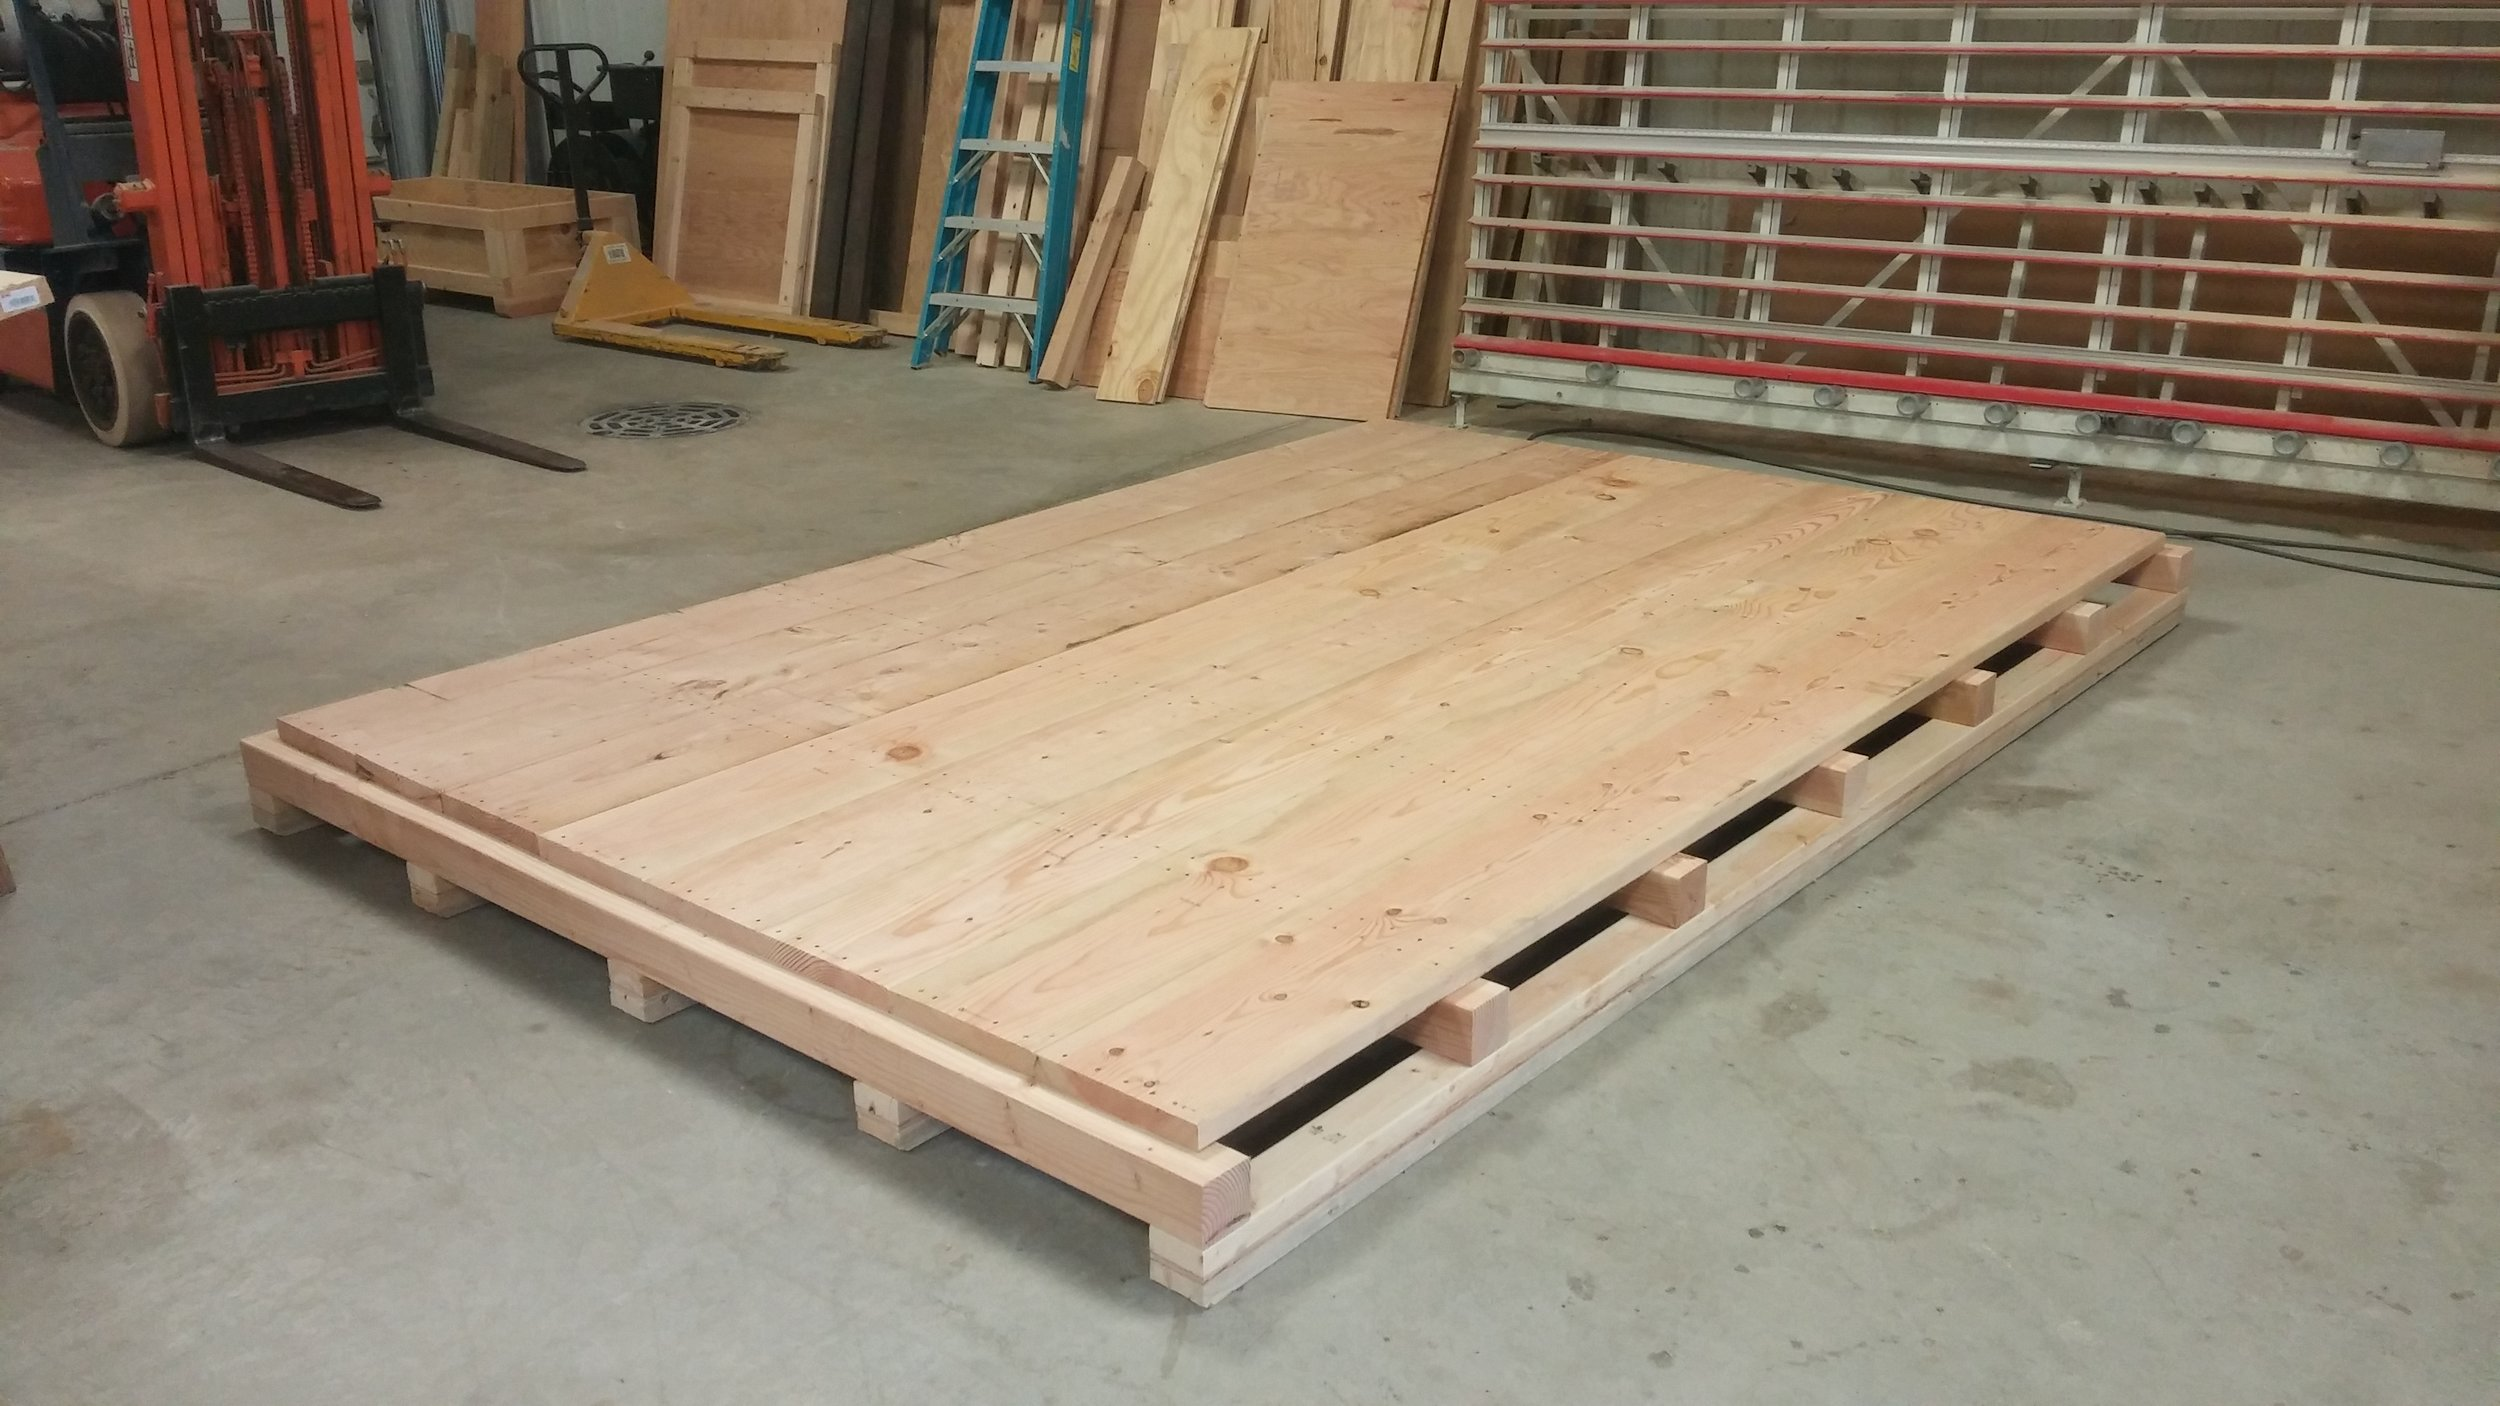 "Our crate bases/Decks - are made with a minimum 3/4"" thick plywood or double 3/4"" Ply (1-1/2"" Thick) depending on the usage.For really heavy-duty wood crates we like to use 2x12 (1-1/2"" thick planks). They make a really strong deck and give enough material to bolt or screw into. Great for machinery.Depending on the load, the crate's deck construction is a critical part of designing a crate for a particular job.Make it strong = No worries. That's how we like it."